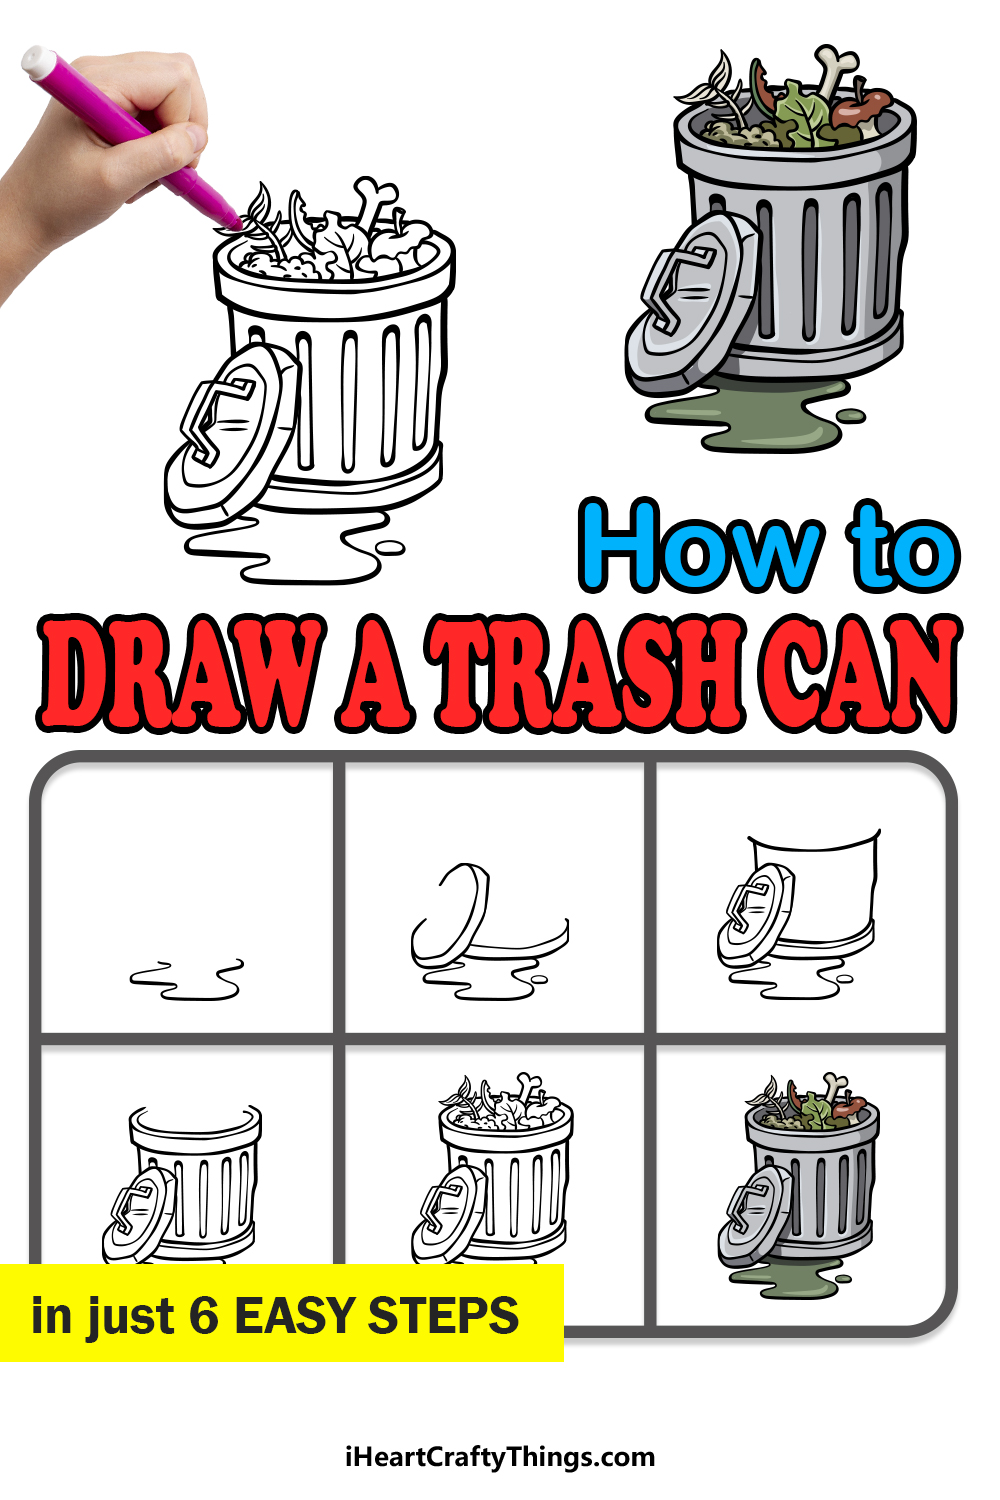 how to draw a trash can in 6 easy steps